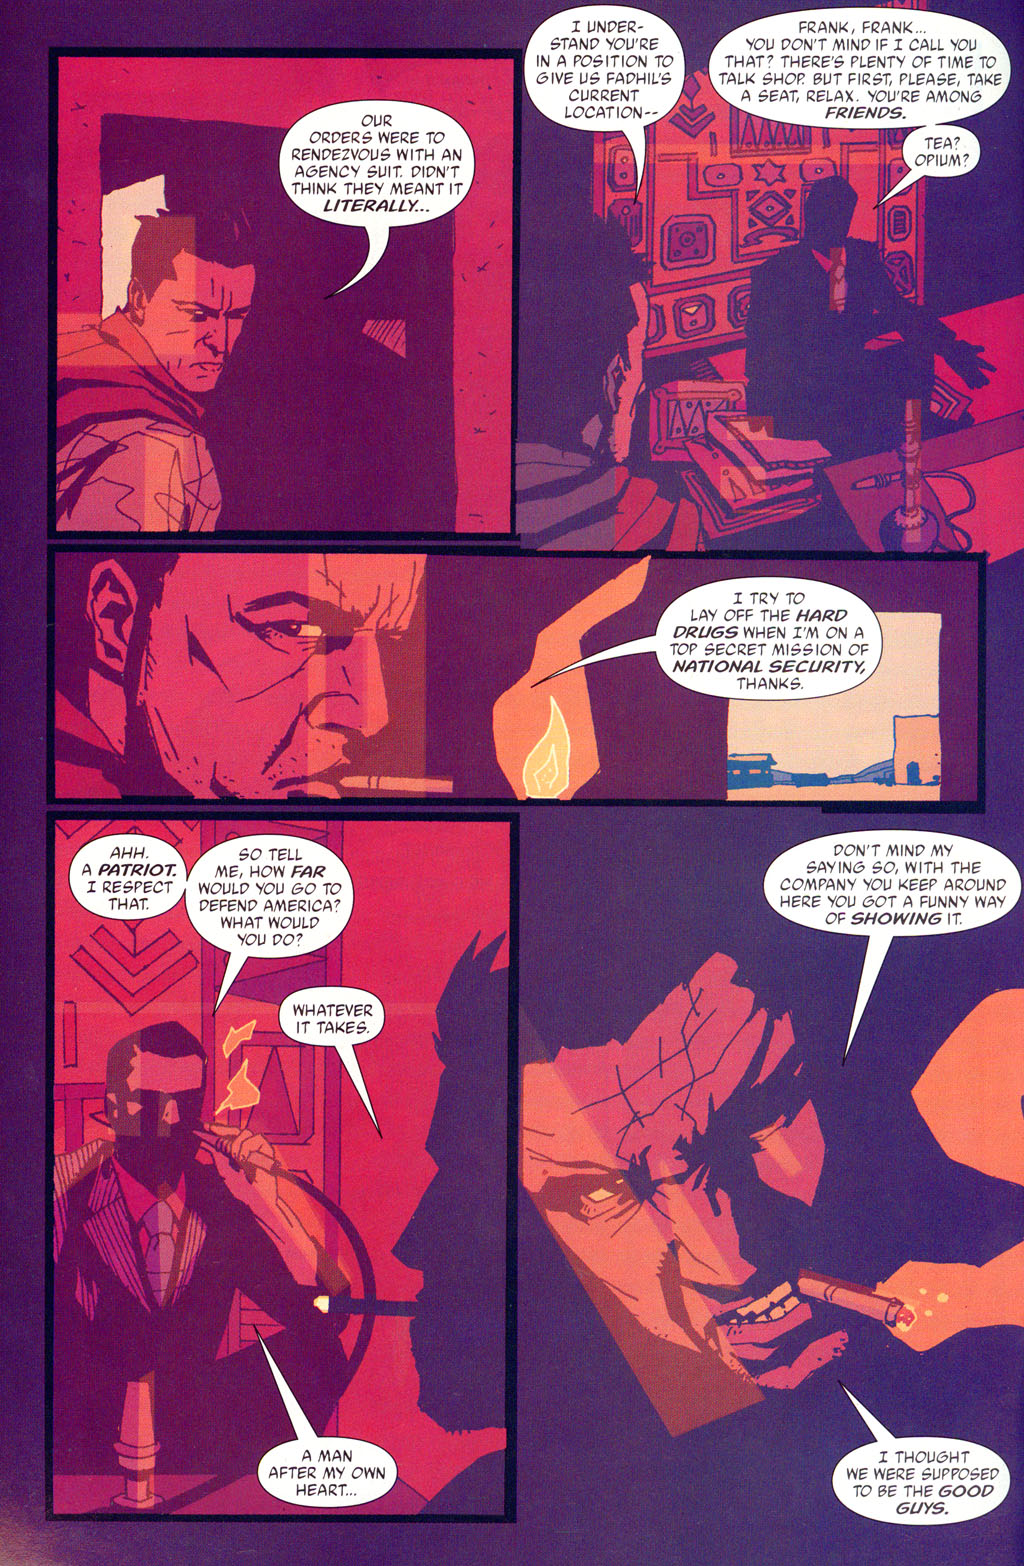 The Losers (2003) #16 pg.18, lettered by Clem Robins.